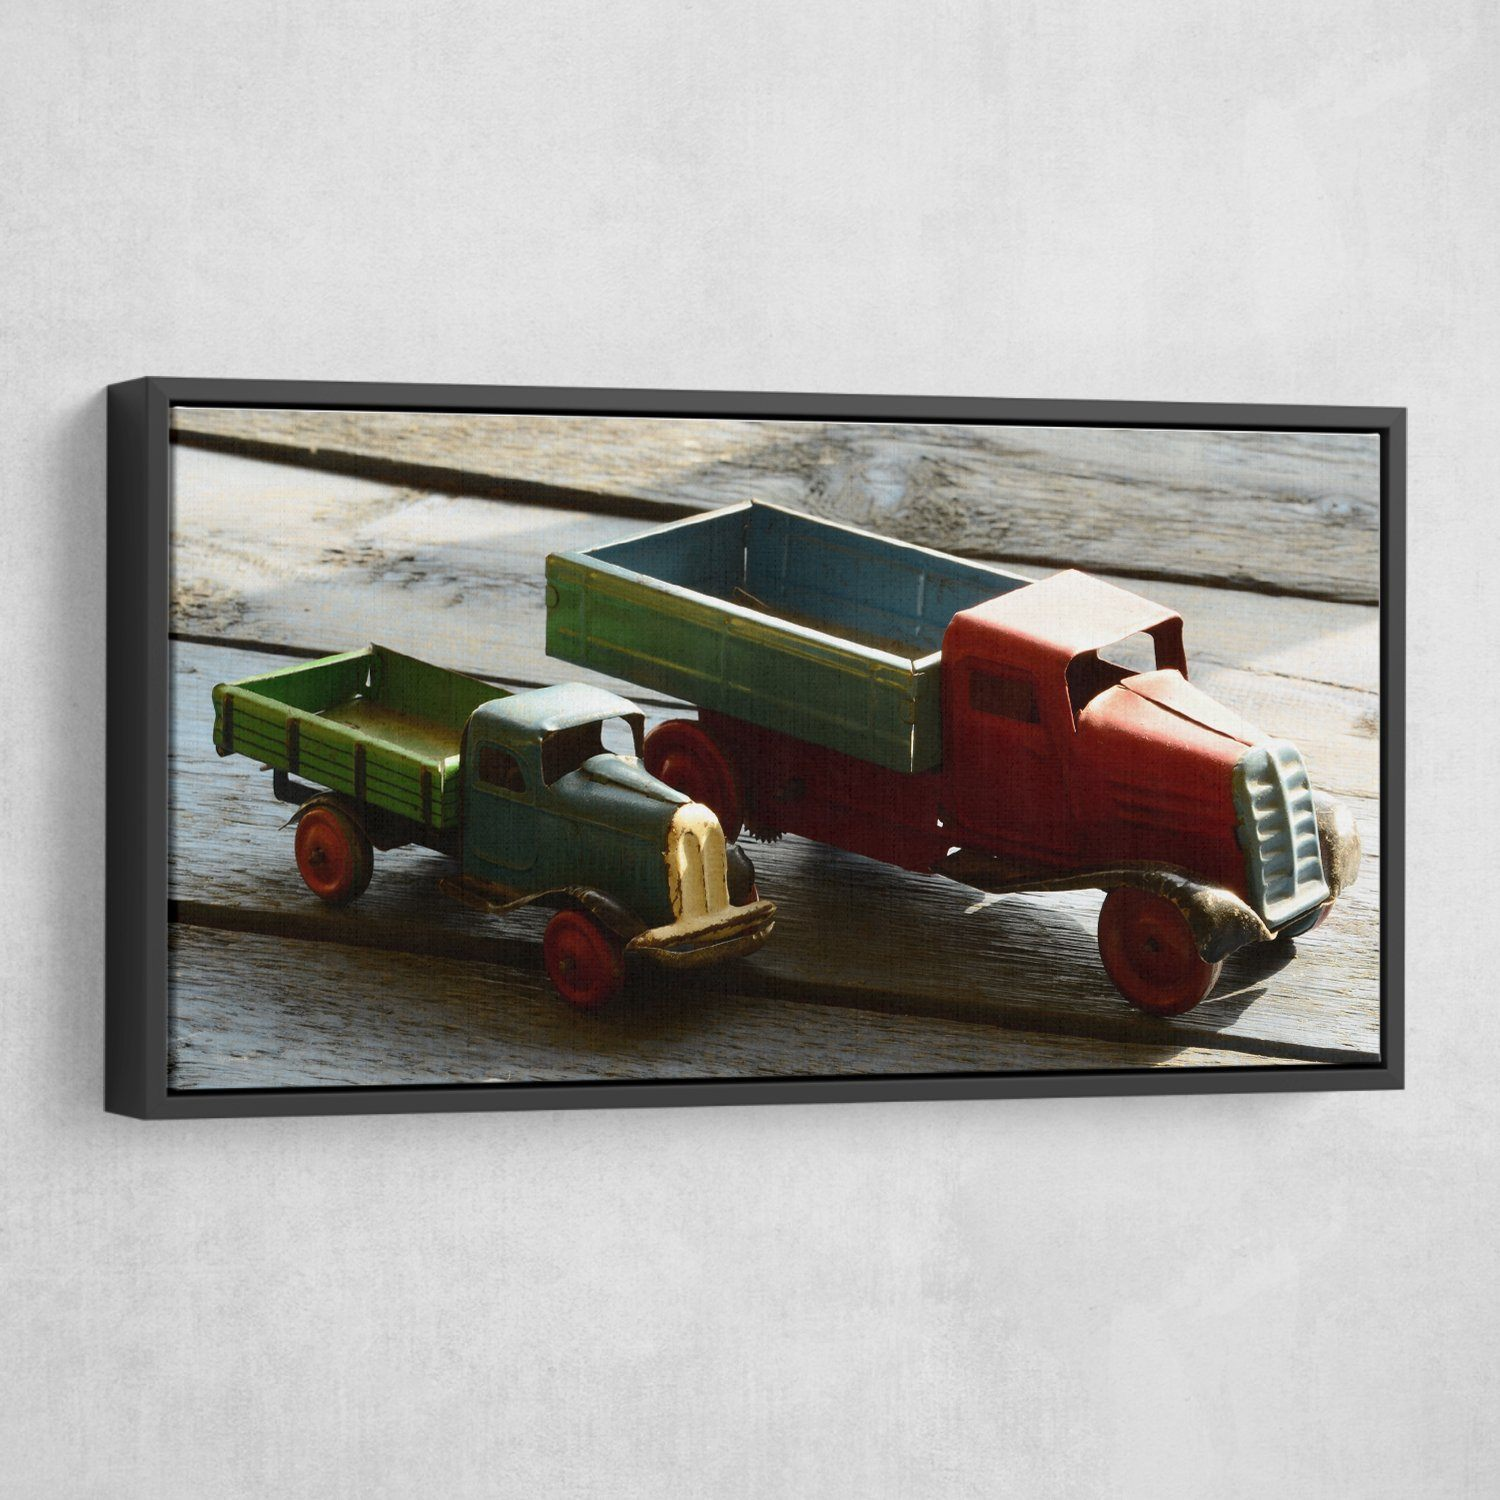 Miniature truck wall art black frame